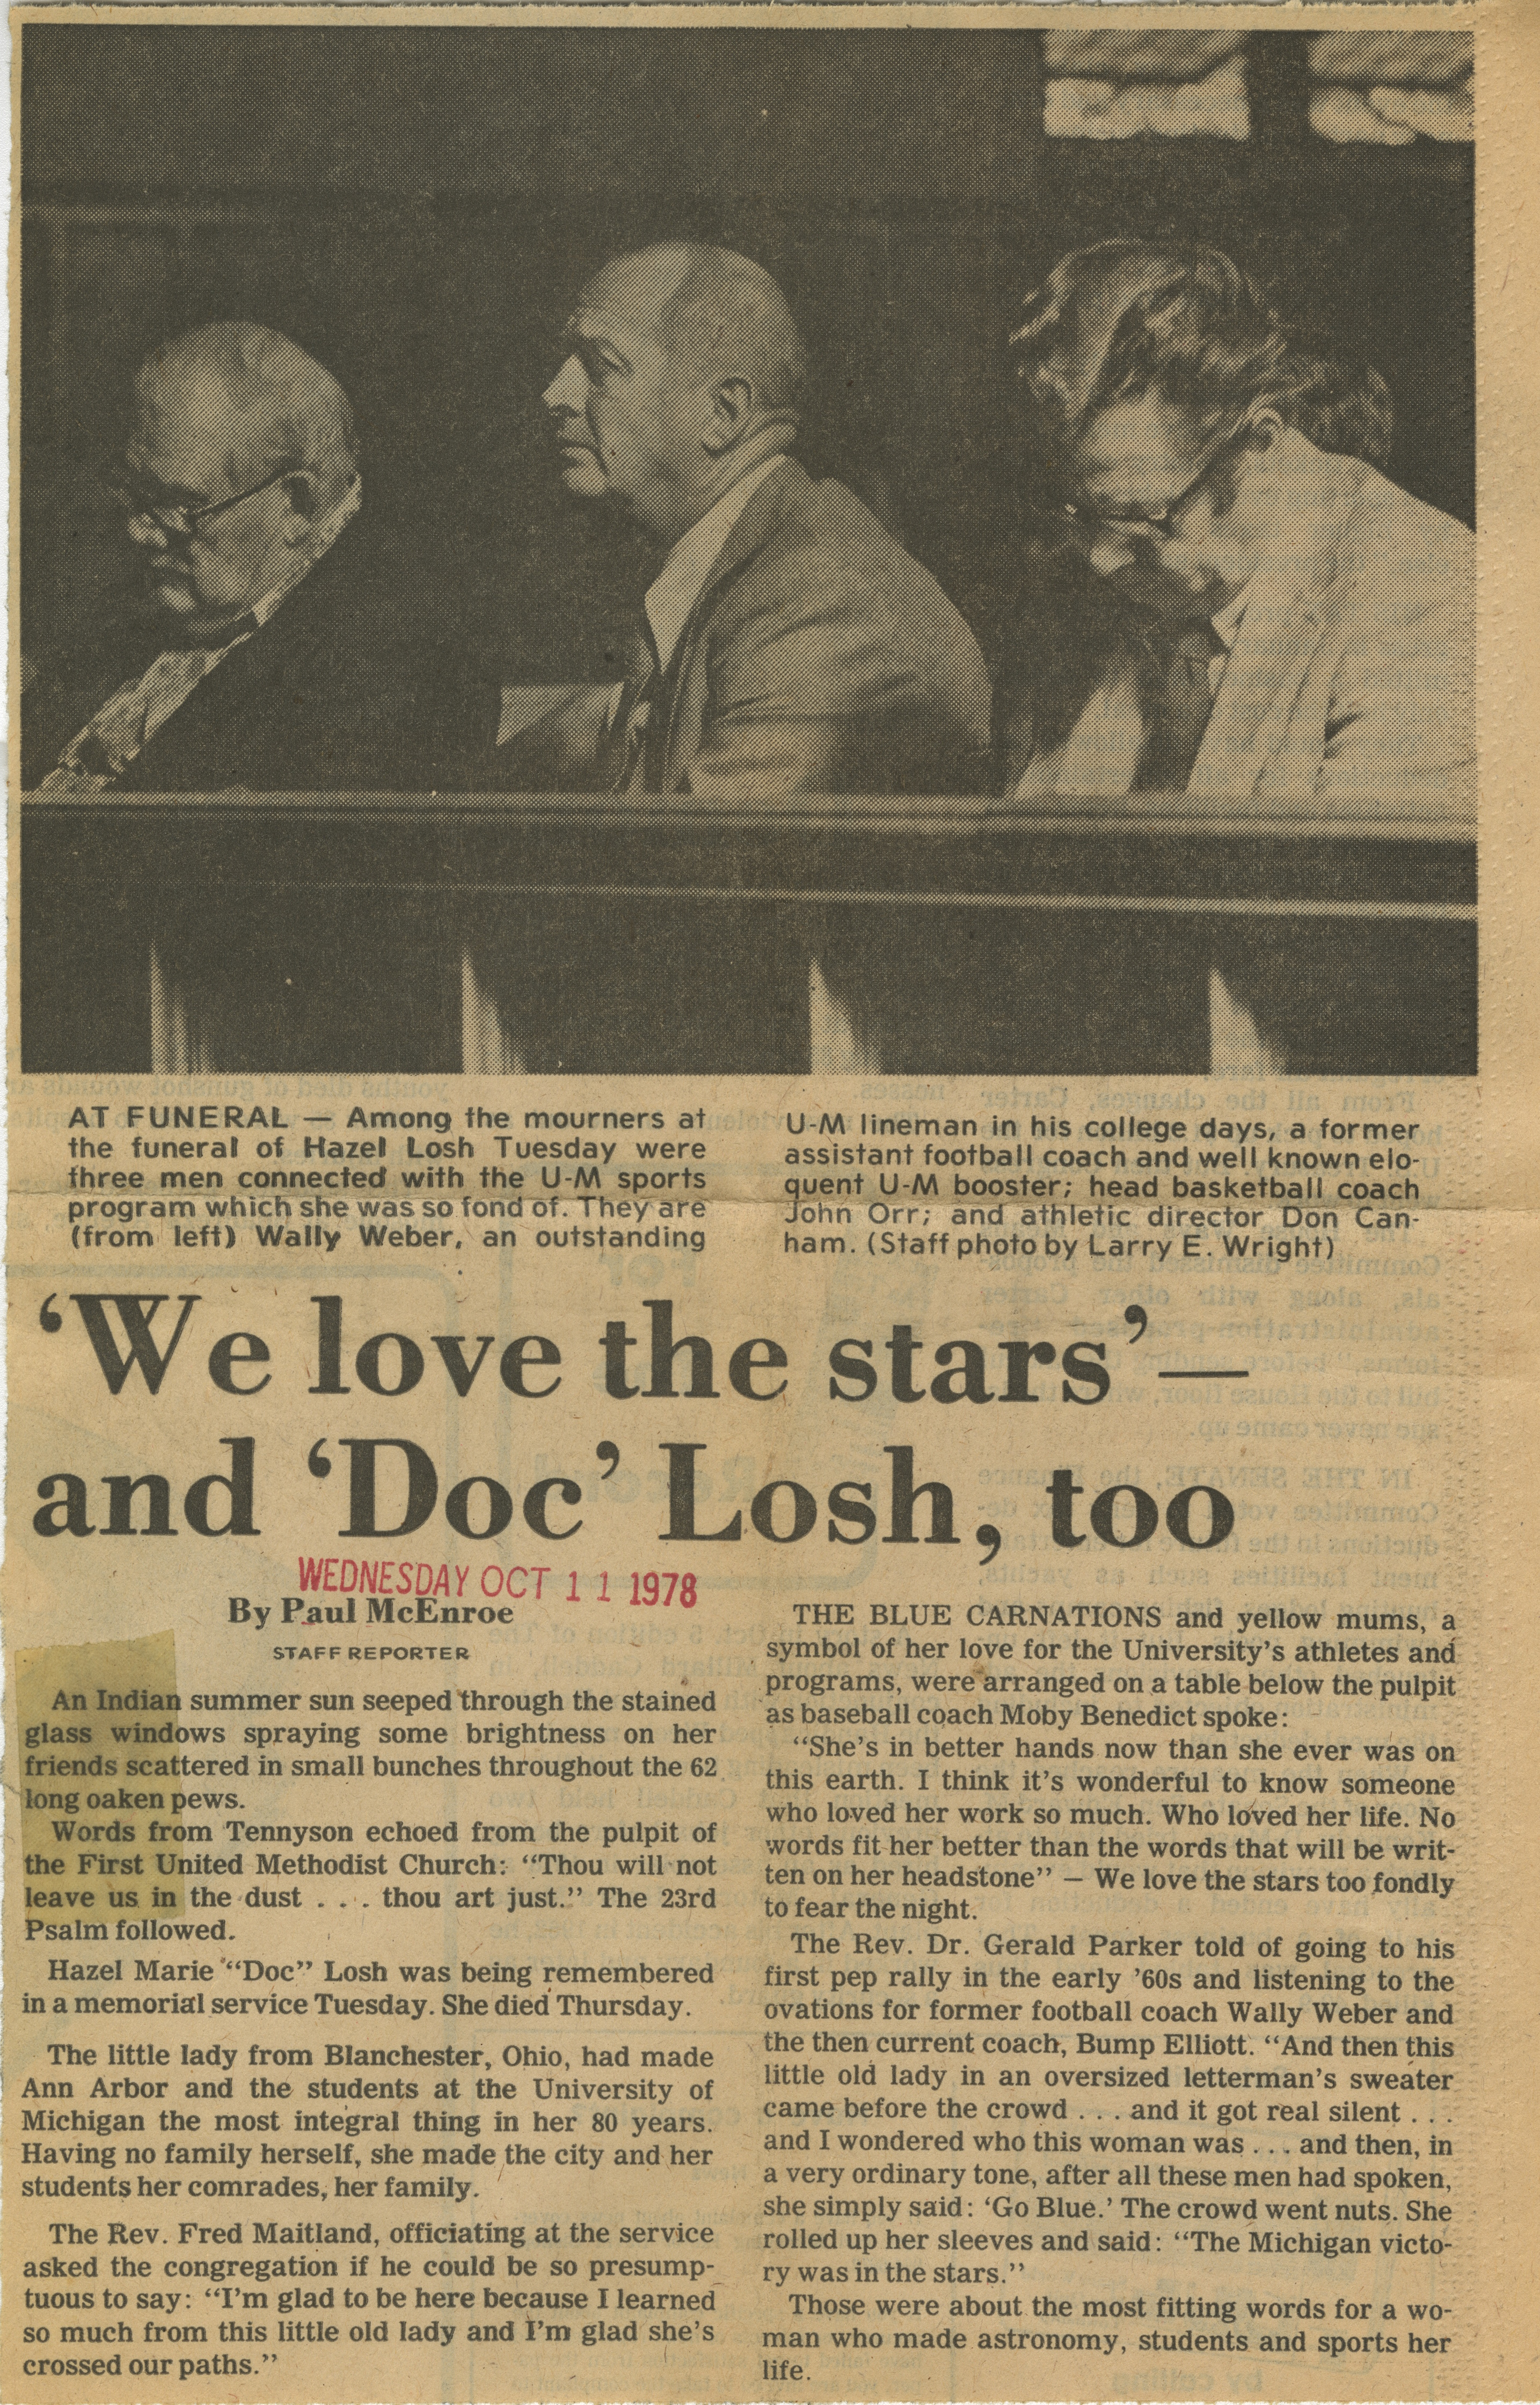 'We love the stars' - and 'Doc' Losh, too image